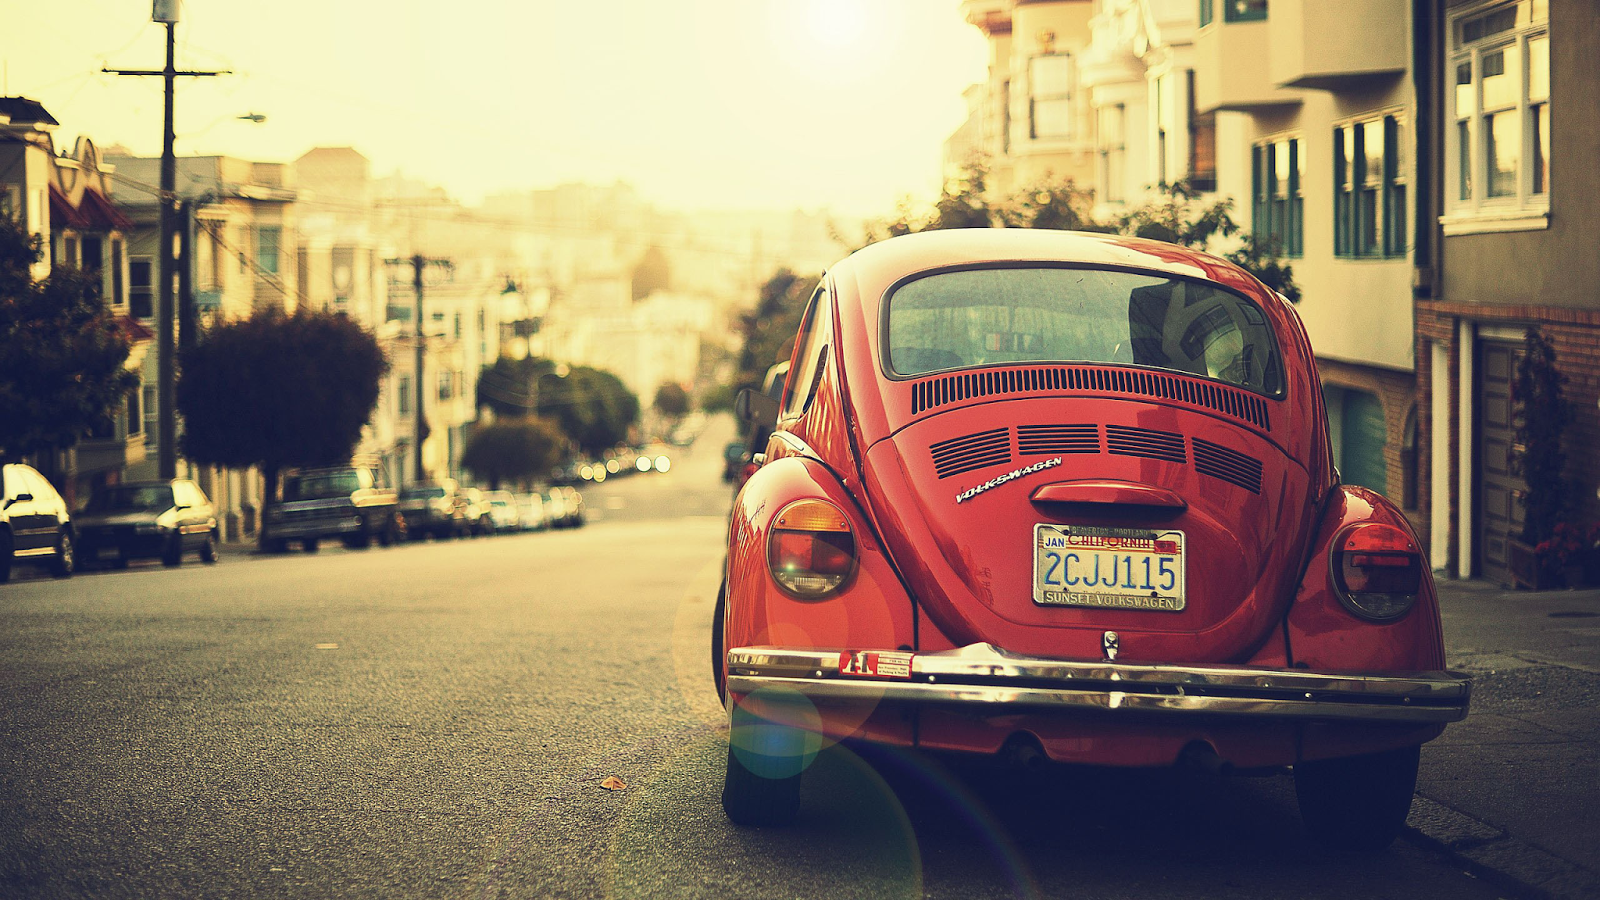 volkswagen-beetle-vintage-photography-hd-desktop-car-wallpaper